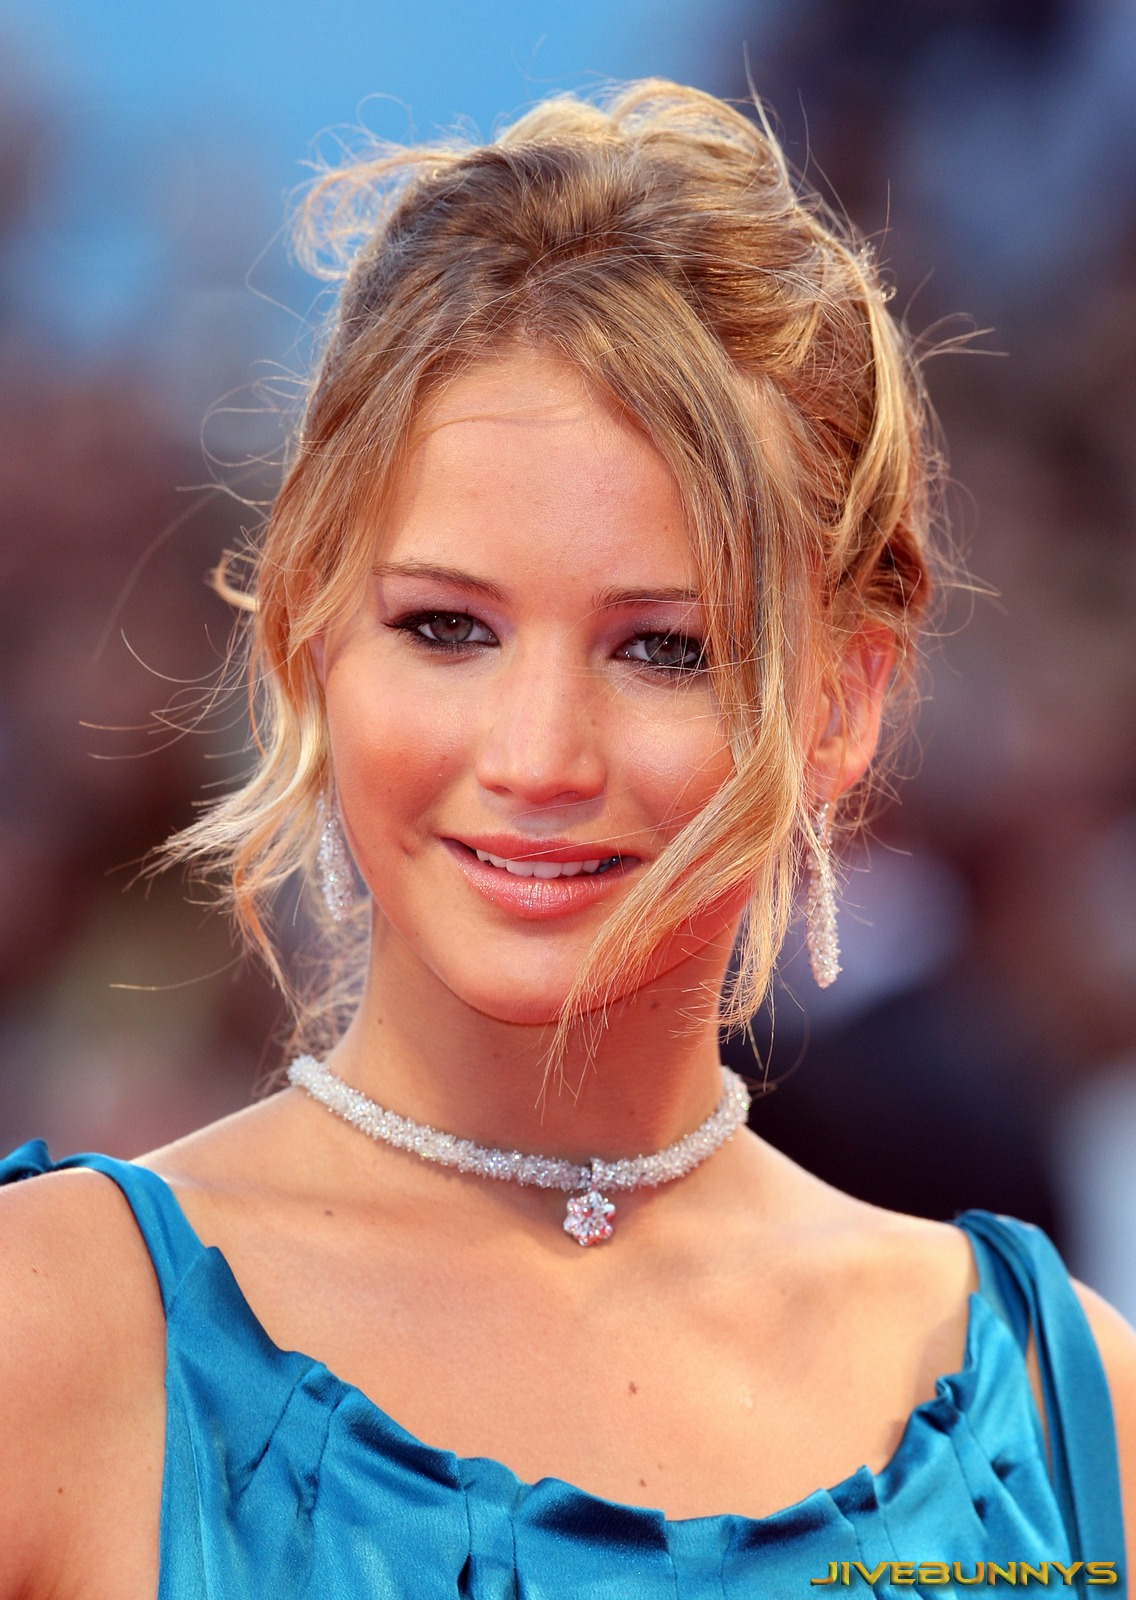 Jennifer Lawrence: biography and career | Film Actresses